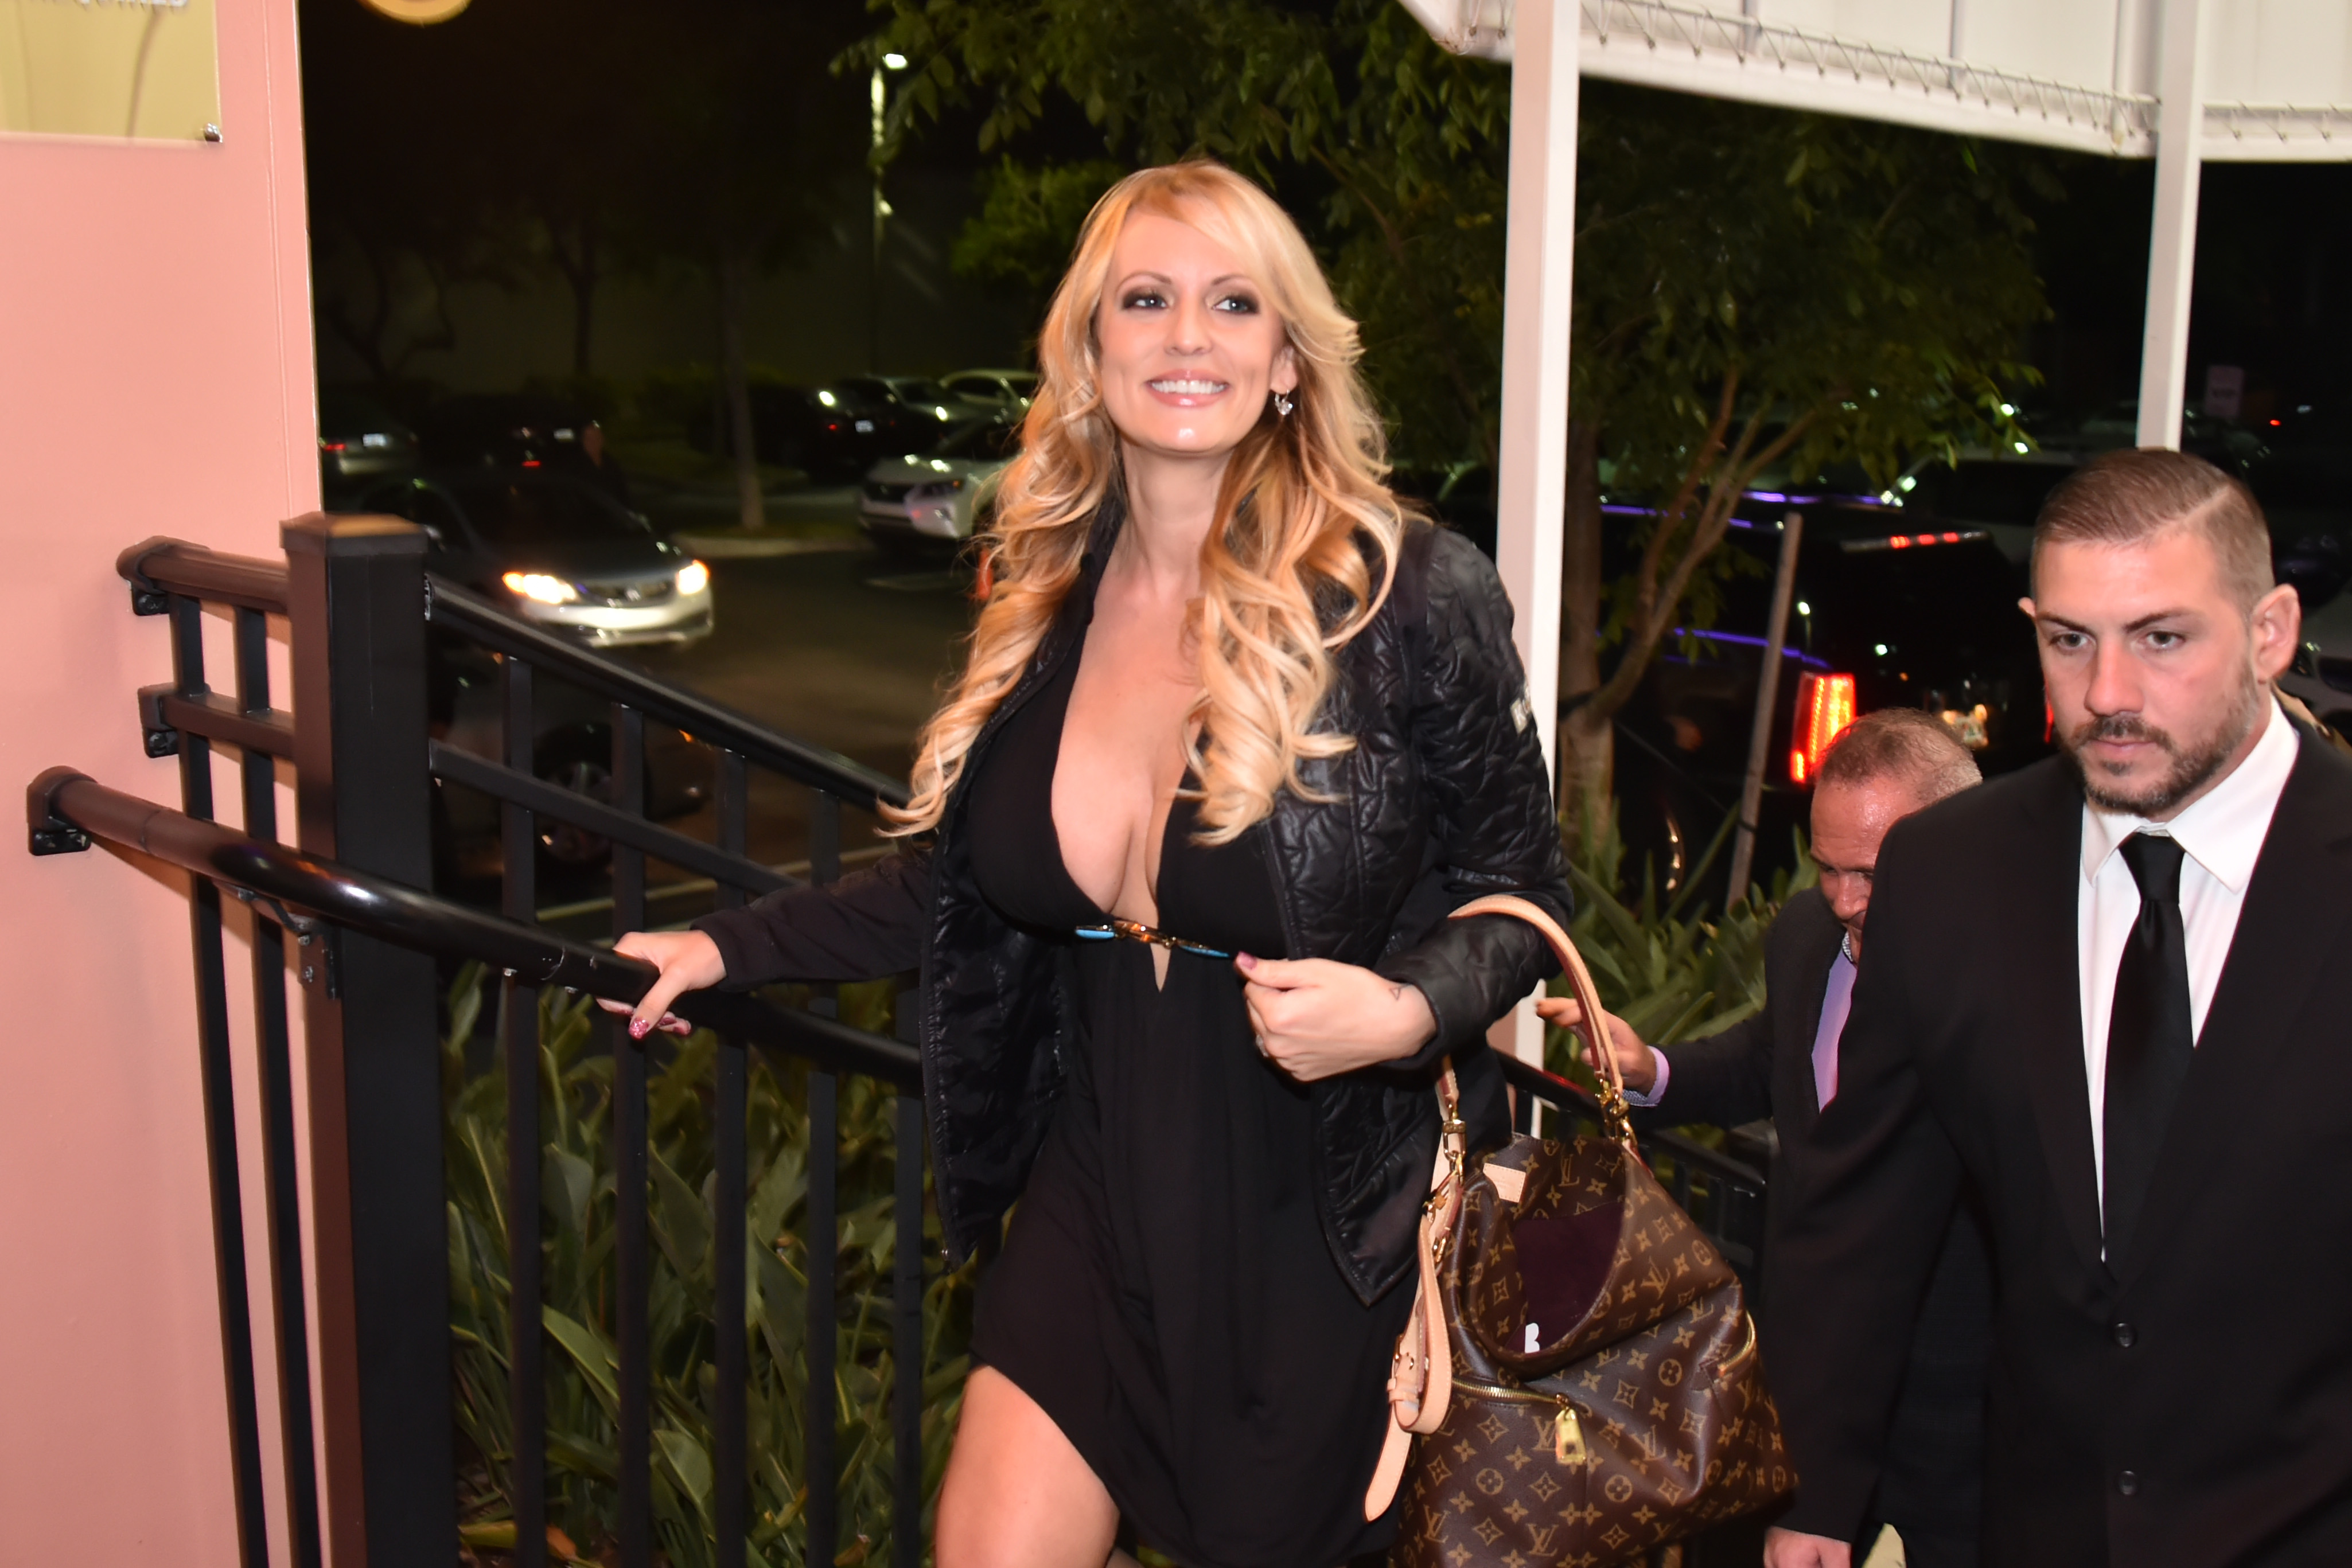 Stormy Daniel arrives at the Solid Gold, Pompano Beach, Florida